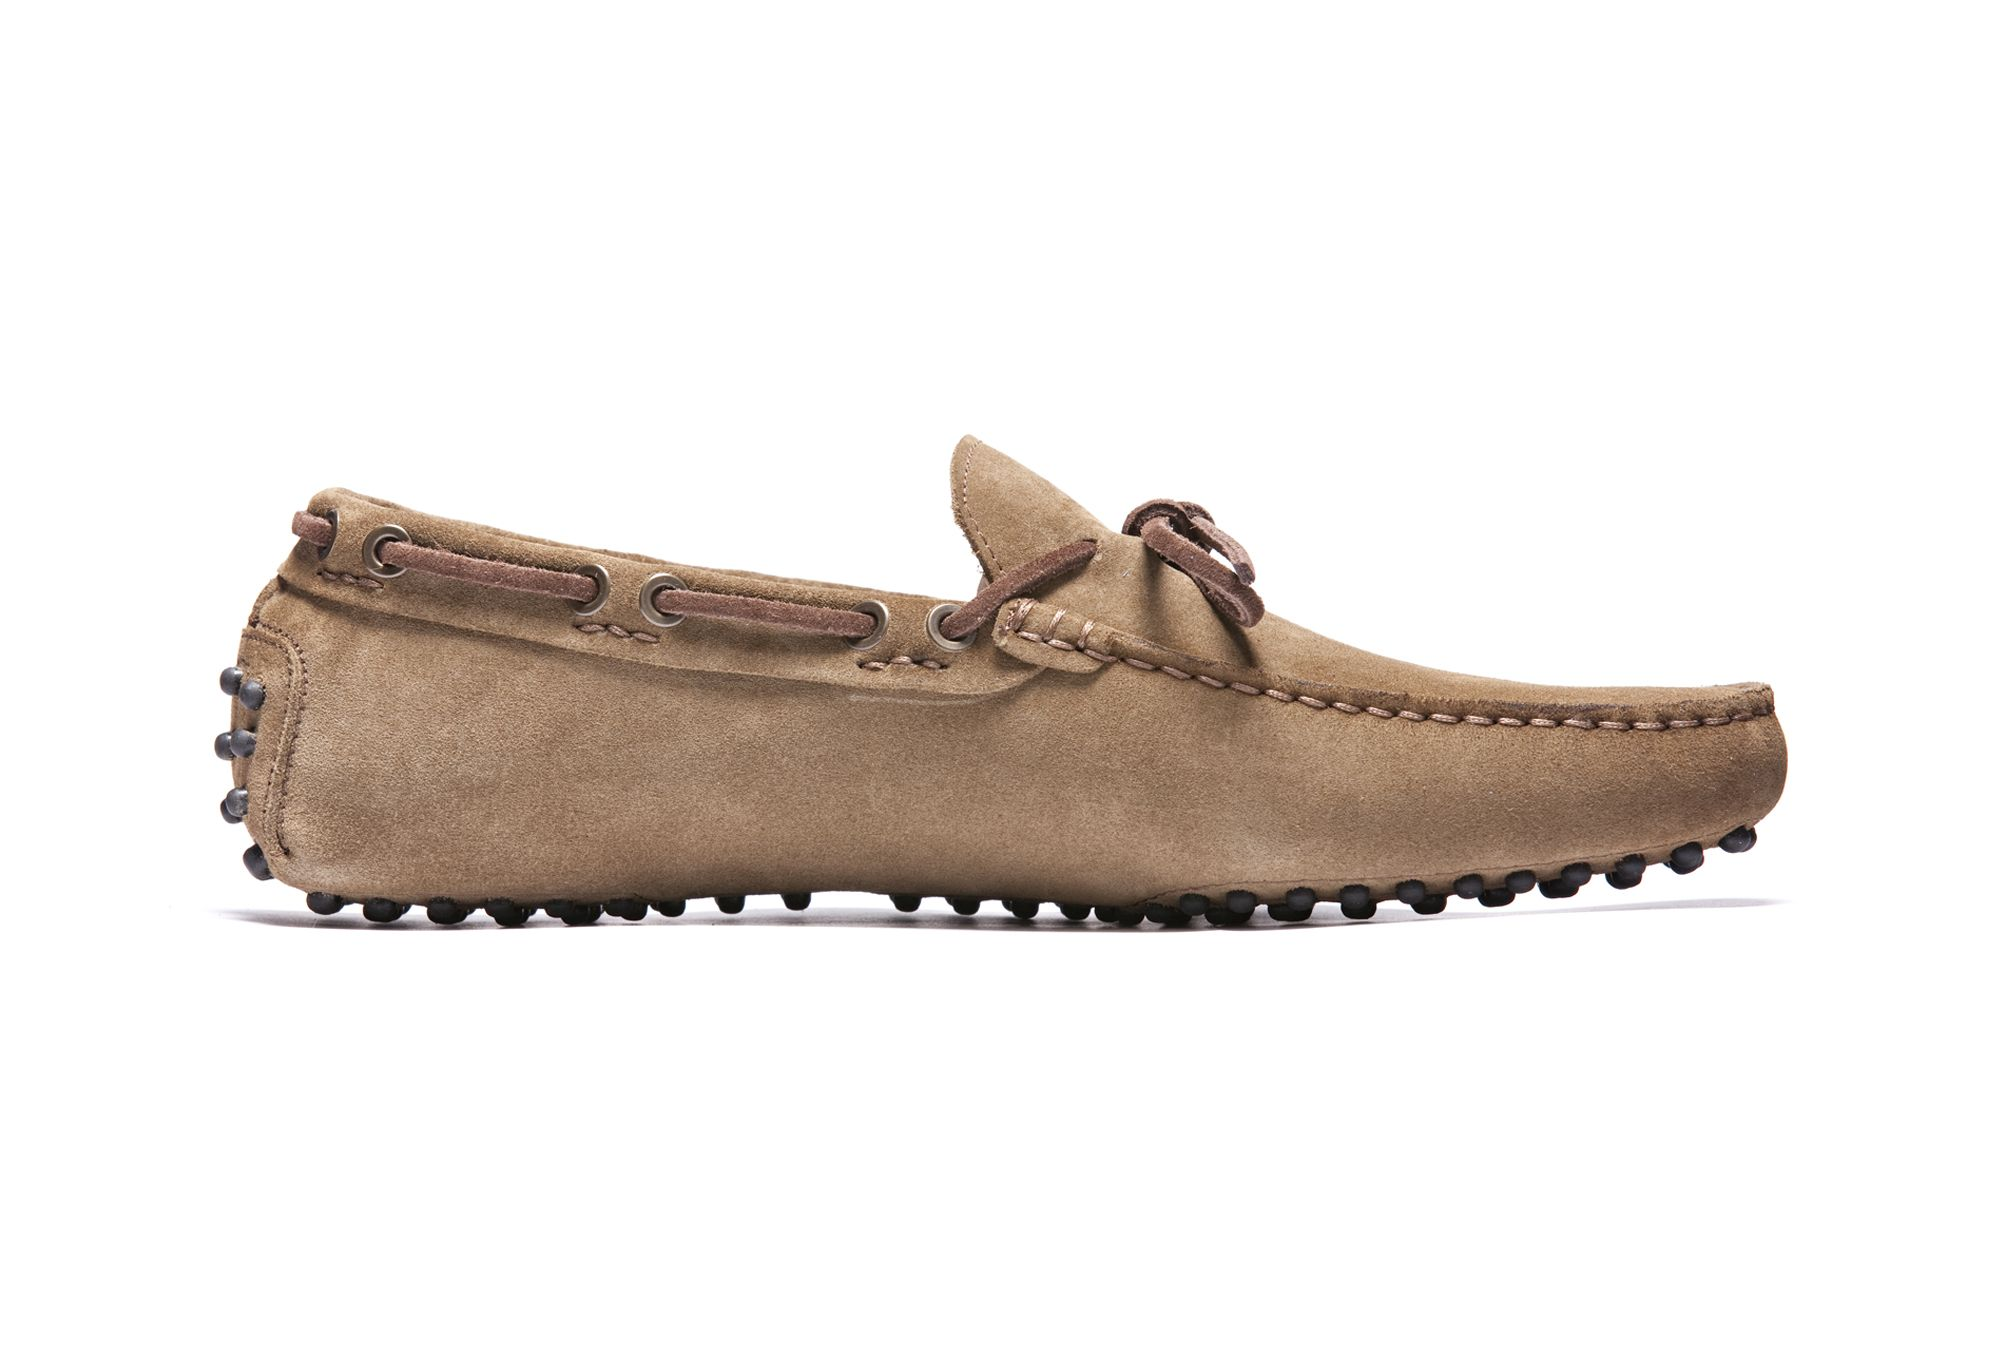 El Professòr, the Professor. There could not be a better name for this sandy brown mocassin with earth brown laces. Note: this does not refer to the boring Statistics professor; rather, it refers to the professor of Fashion Management: always on the ball.